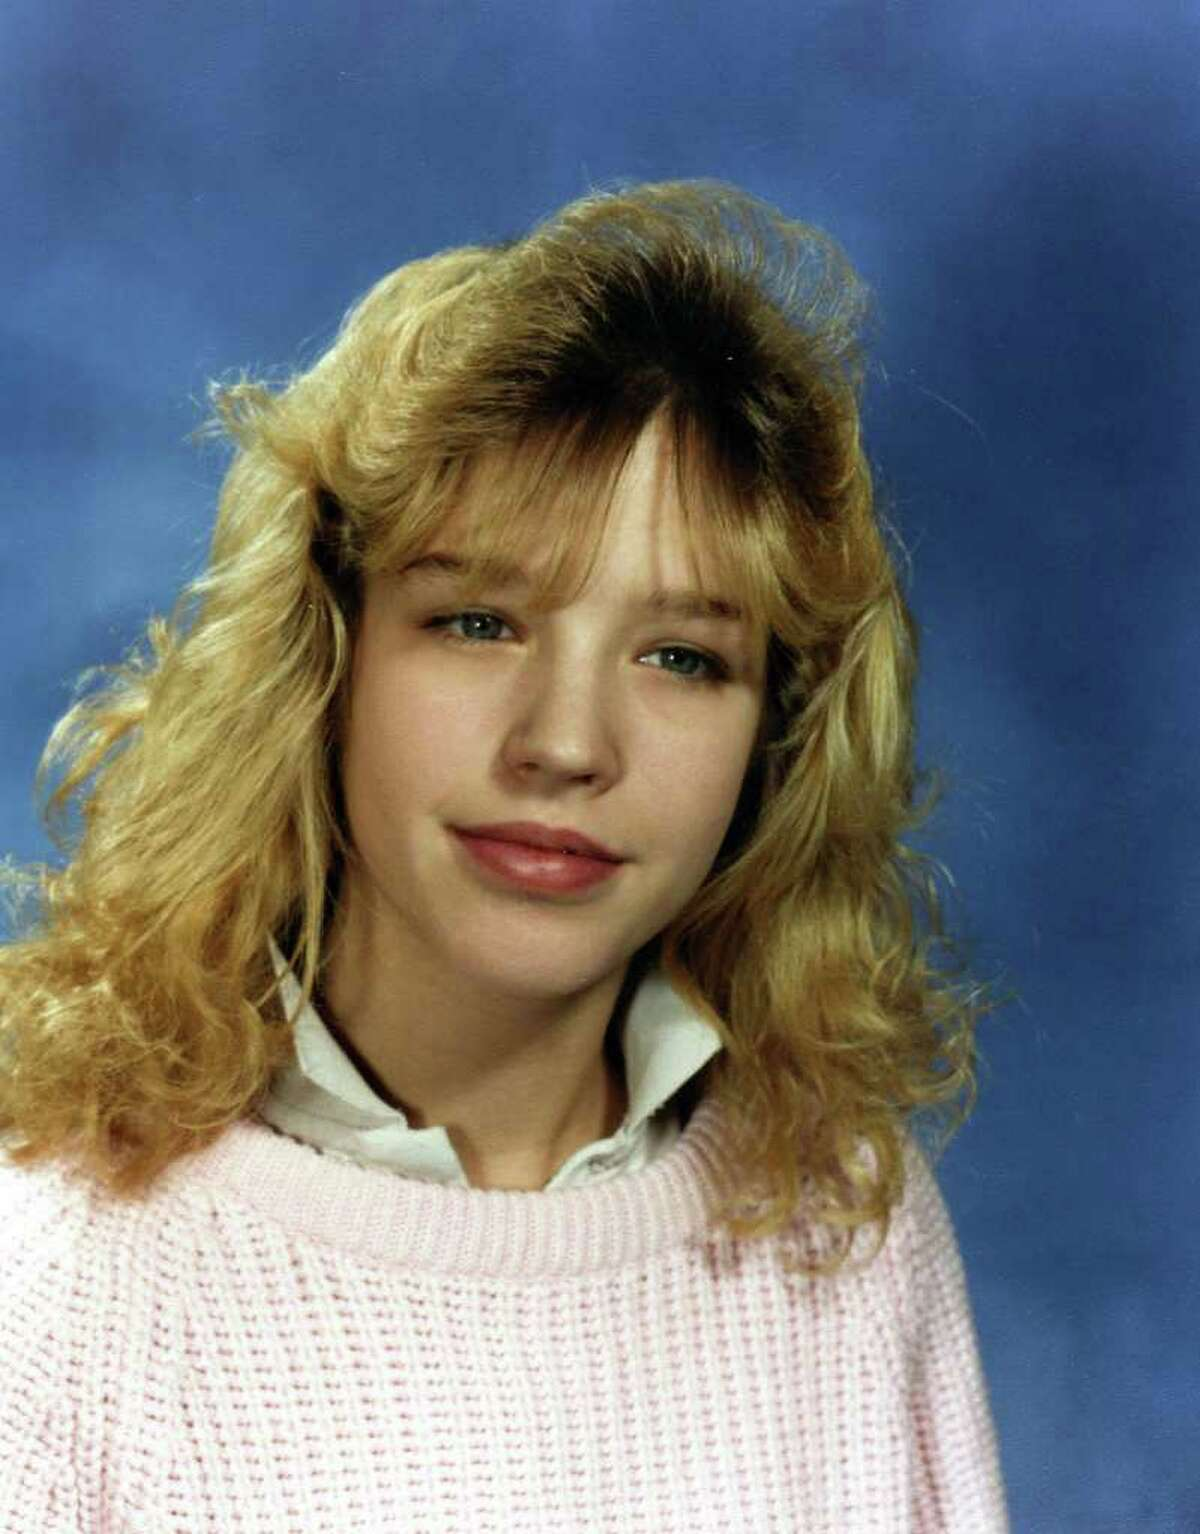 A woman, here in her 7th grade photograph, alleges that in 1990 she was drawn into a sexual relationship with Keith Raniere after he offered to tutor her in Latin and algebra.